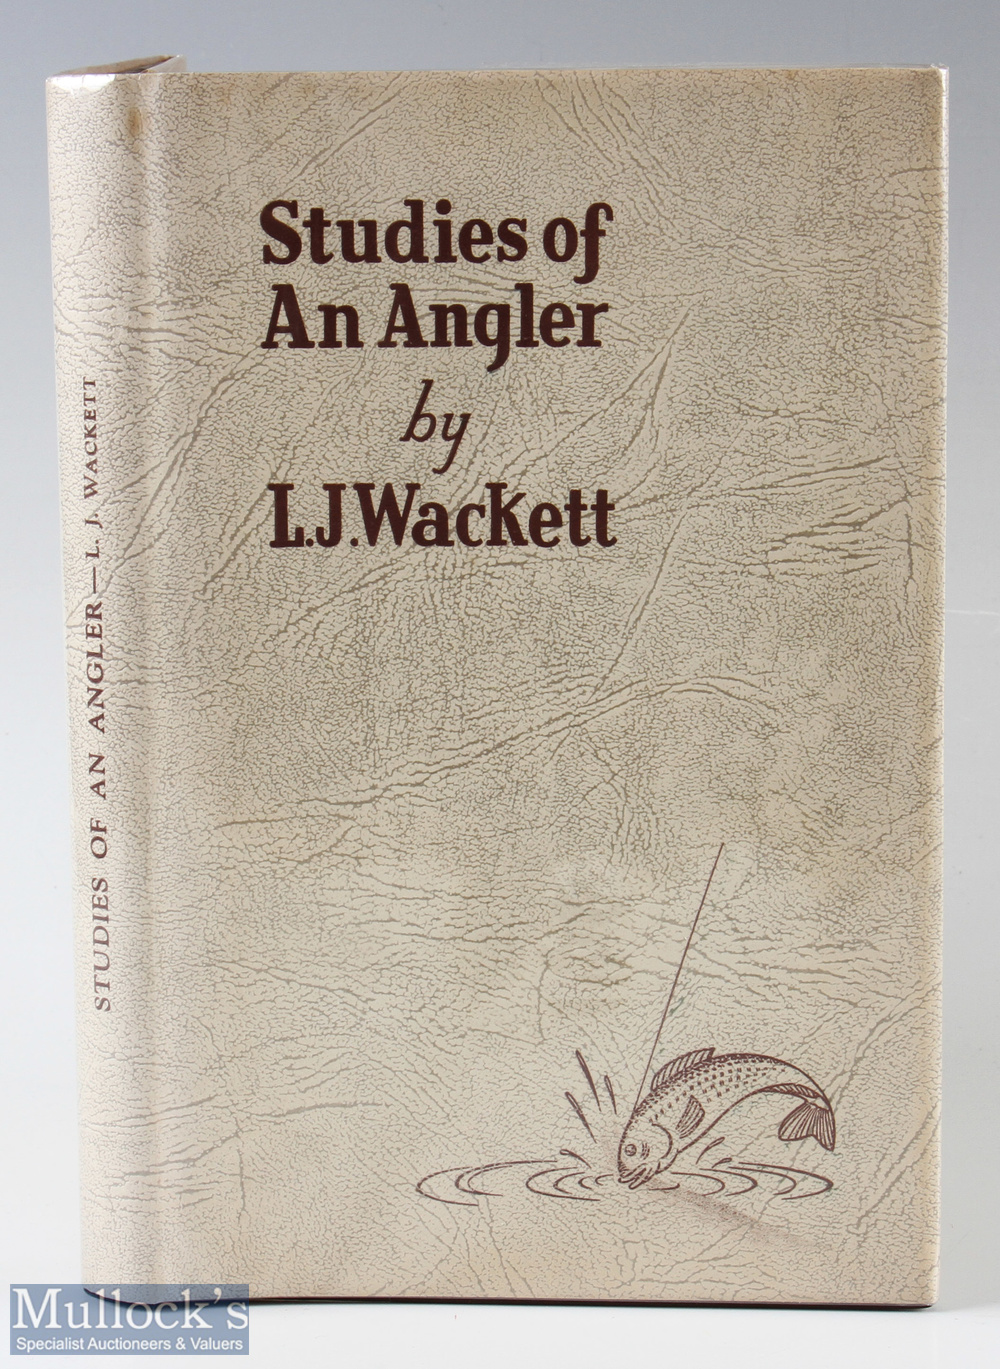 """Wackett, L. J. – """"Studies of an Angler"""" 1st edition published Melbourne 1950, with dust jacket"""